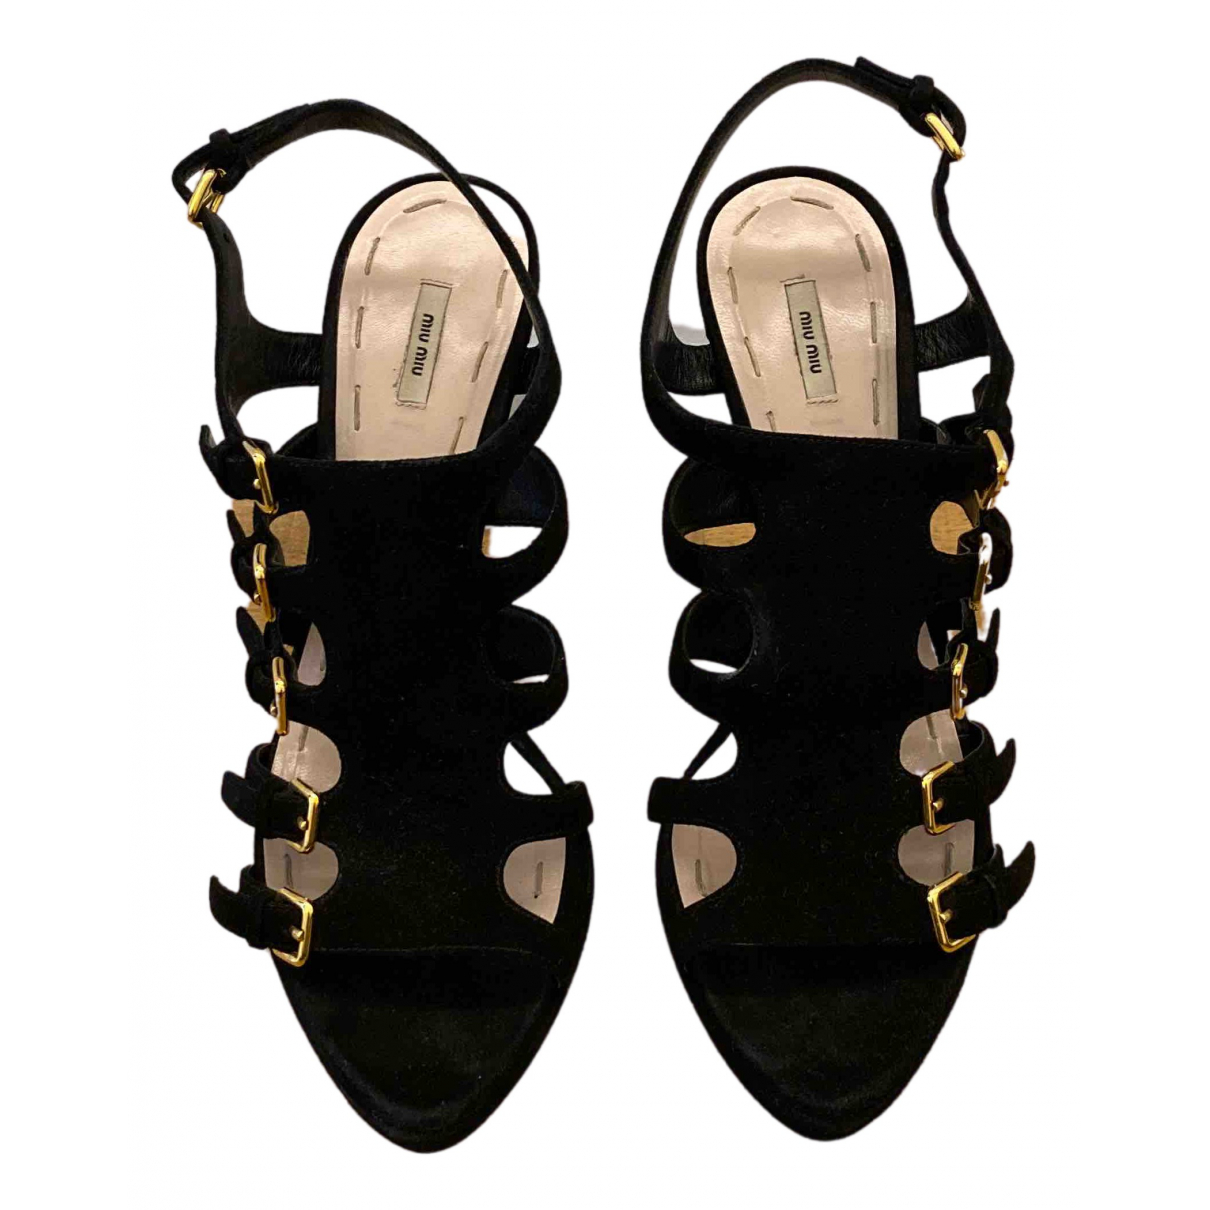 Miu Miu N Black Suede Heels for Women 40 EU